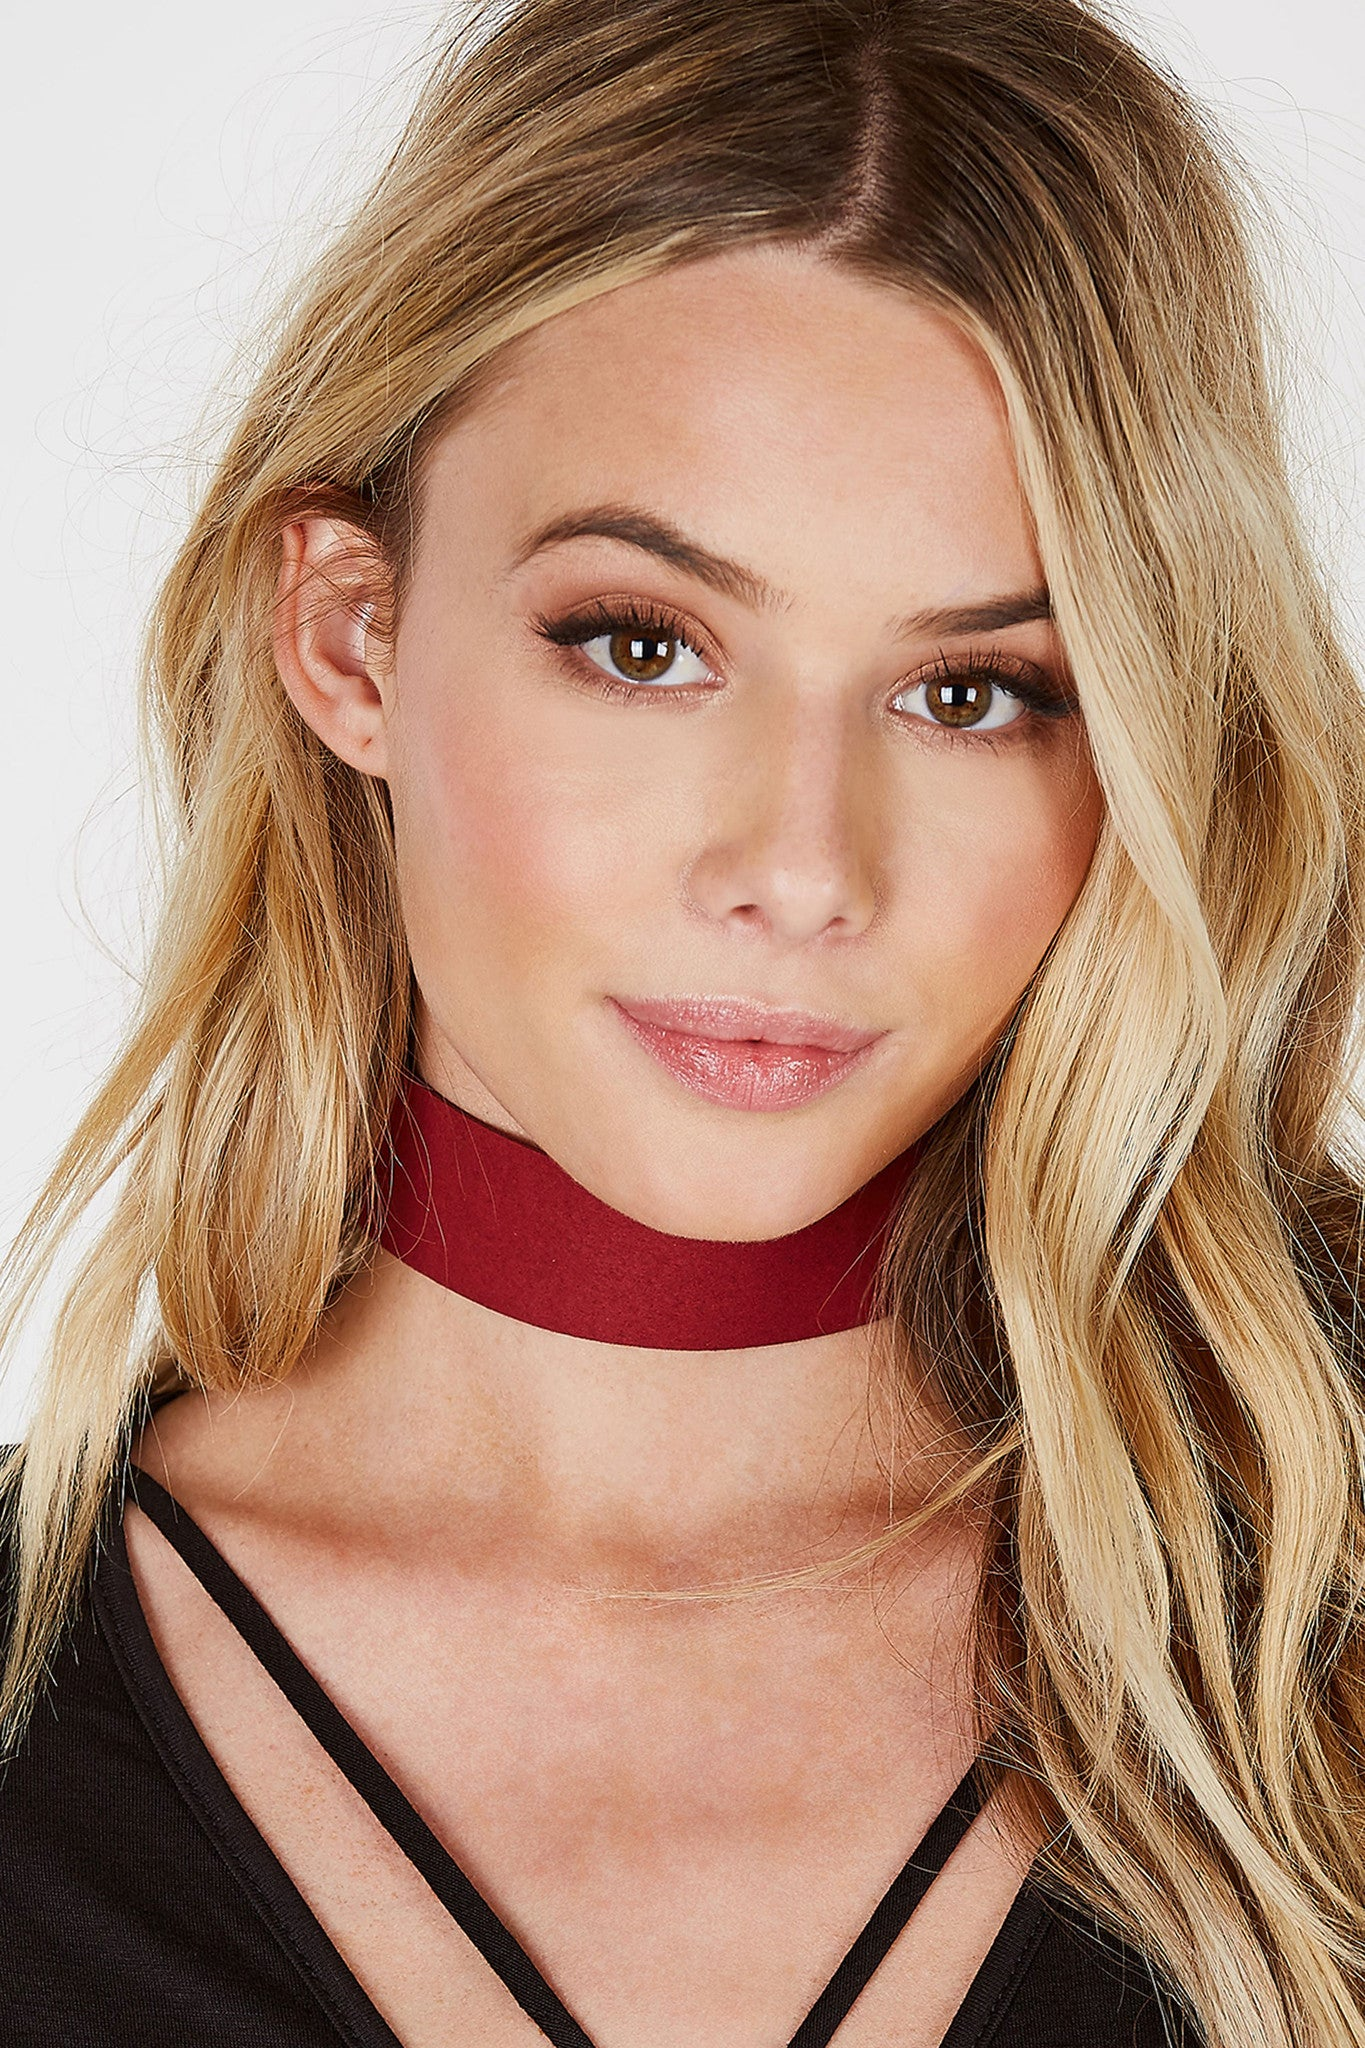 A classic suede choker with a bold wide strap. Simple lobster clasp closure with adjustable fit. Take your basic looks to the next level by styling with this accessory!